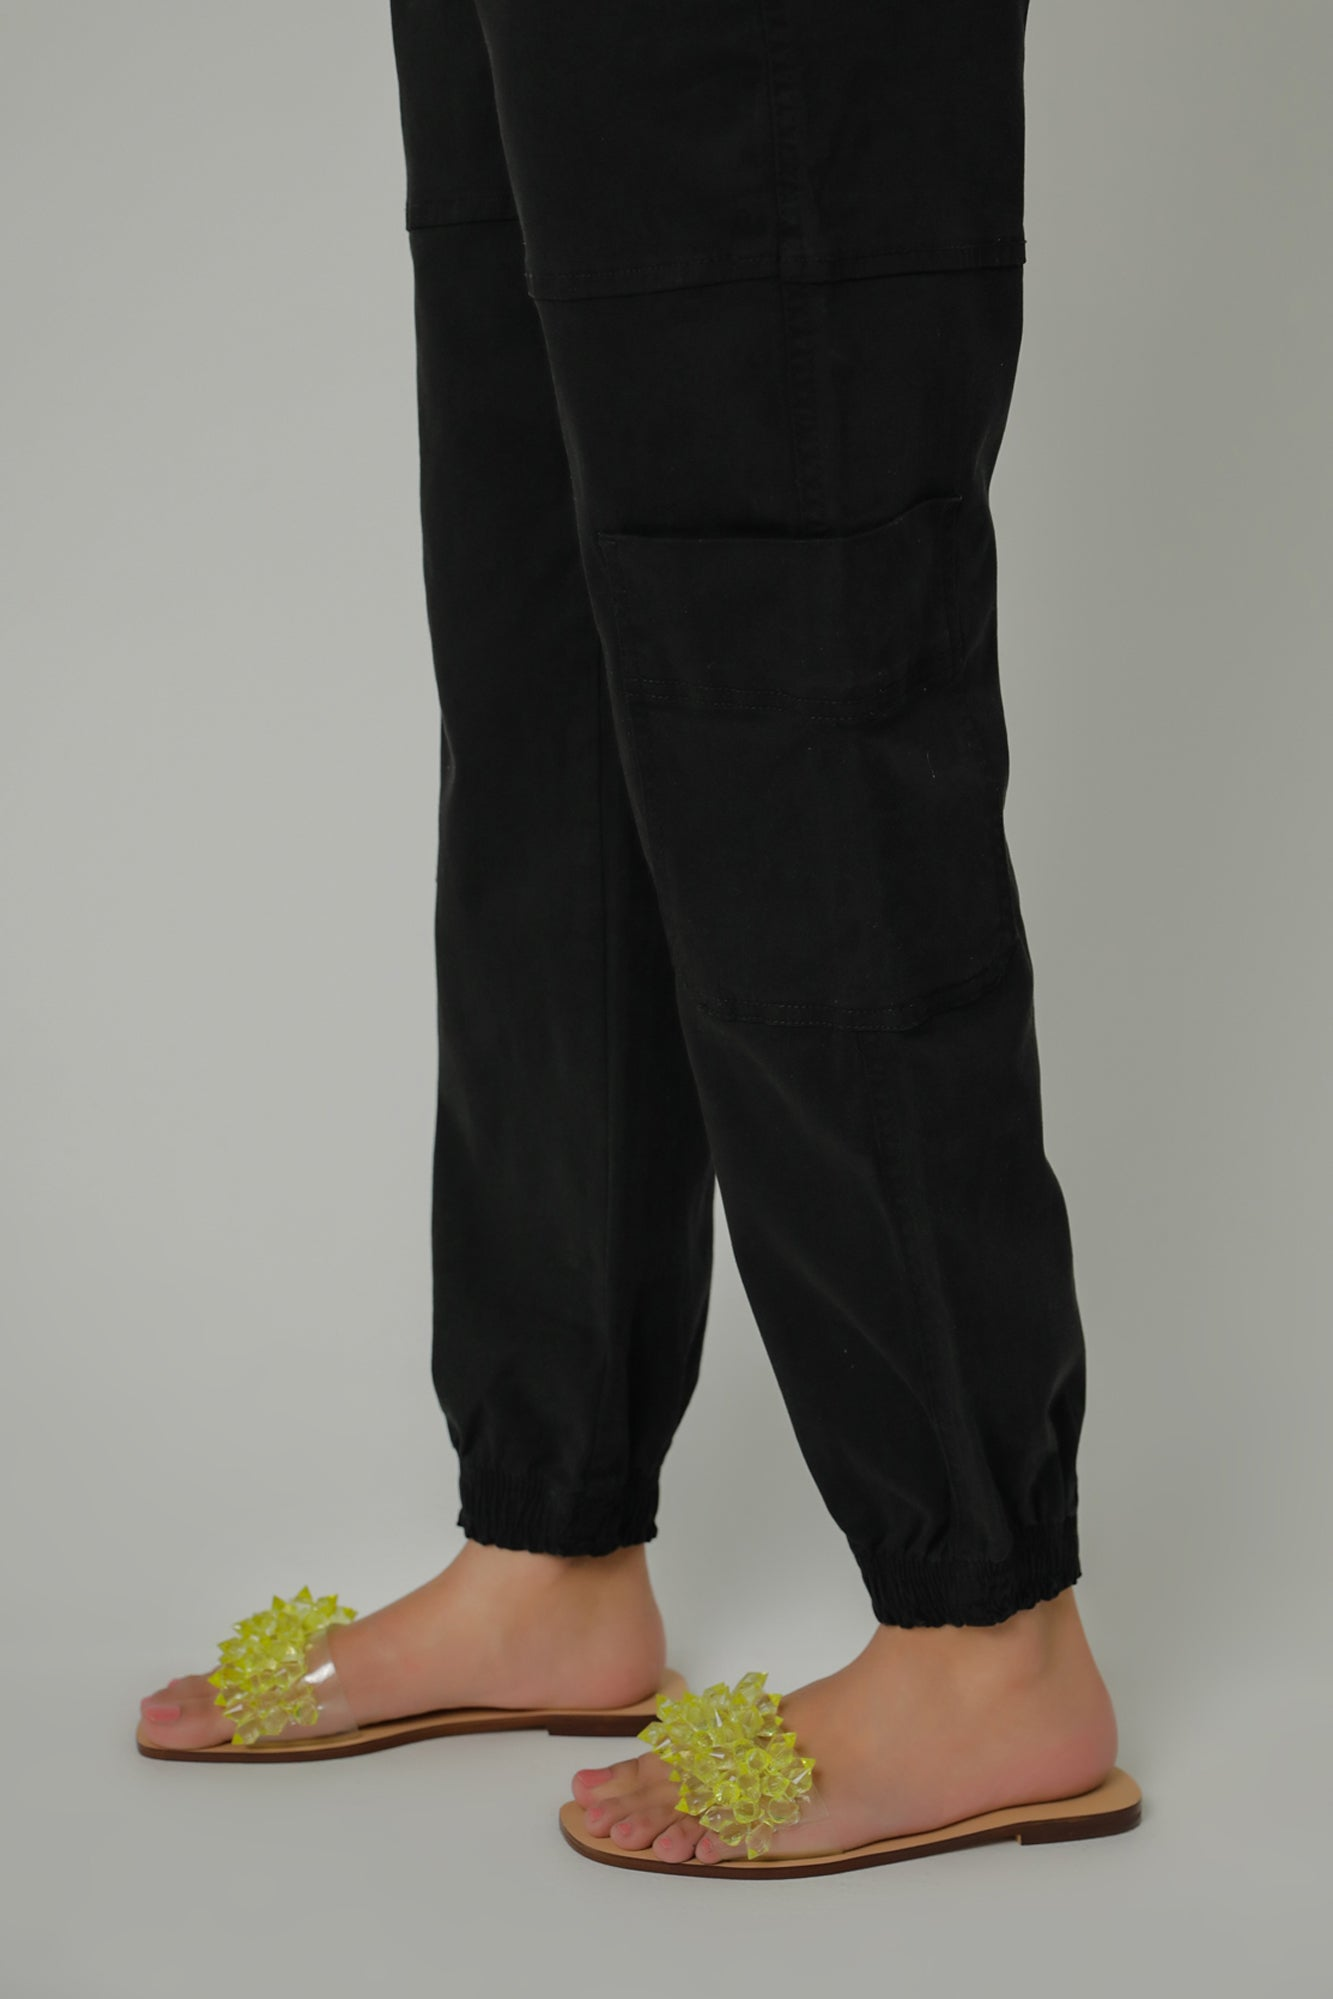 CARGO TROUSER (WBF111674) - Ethnic by Outfitters